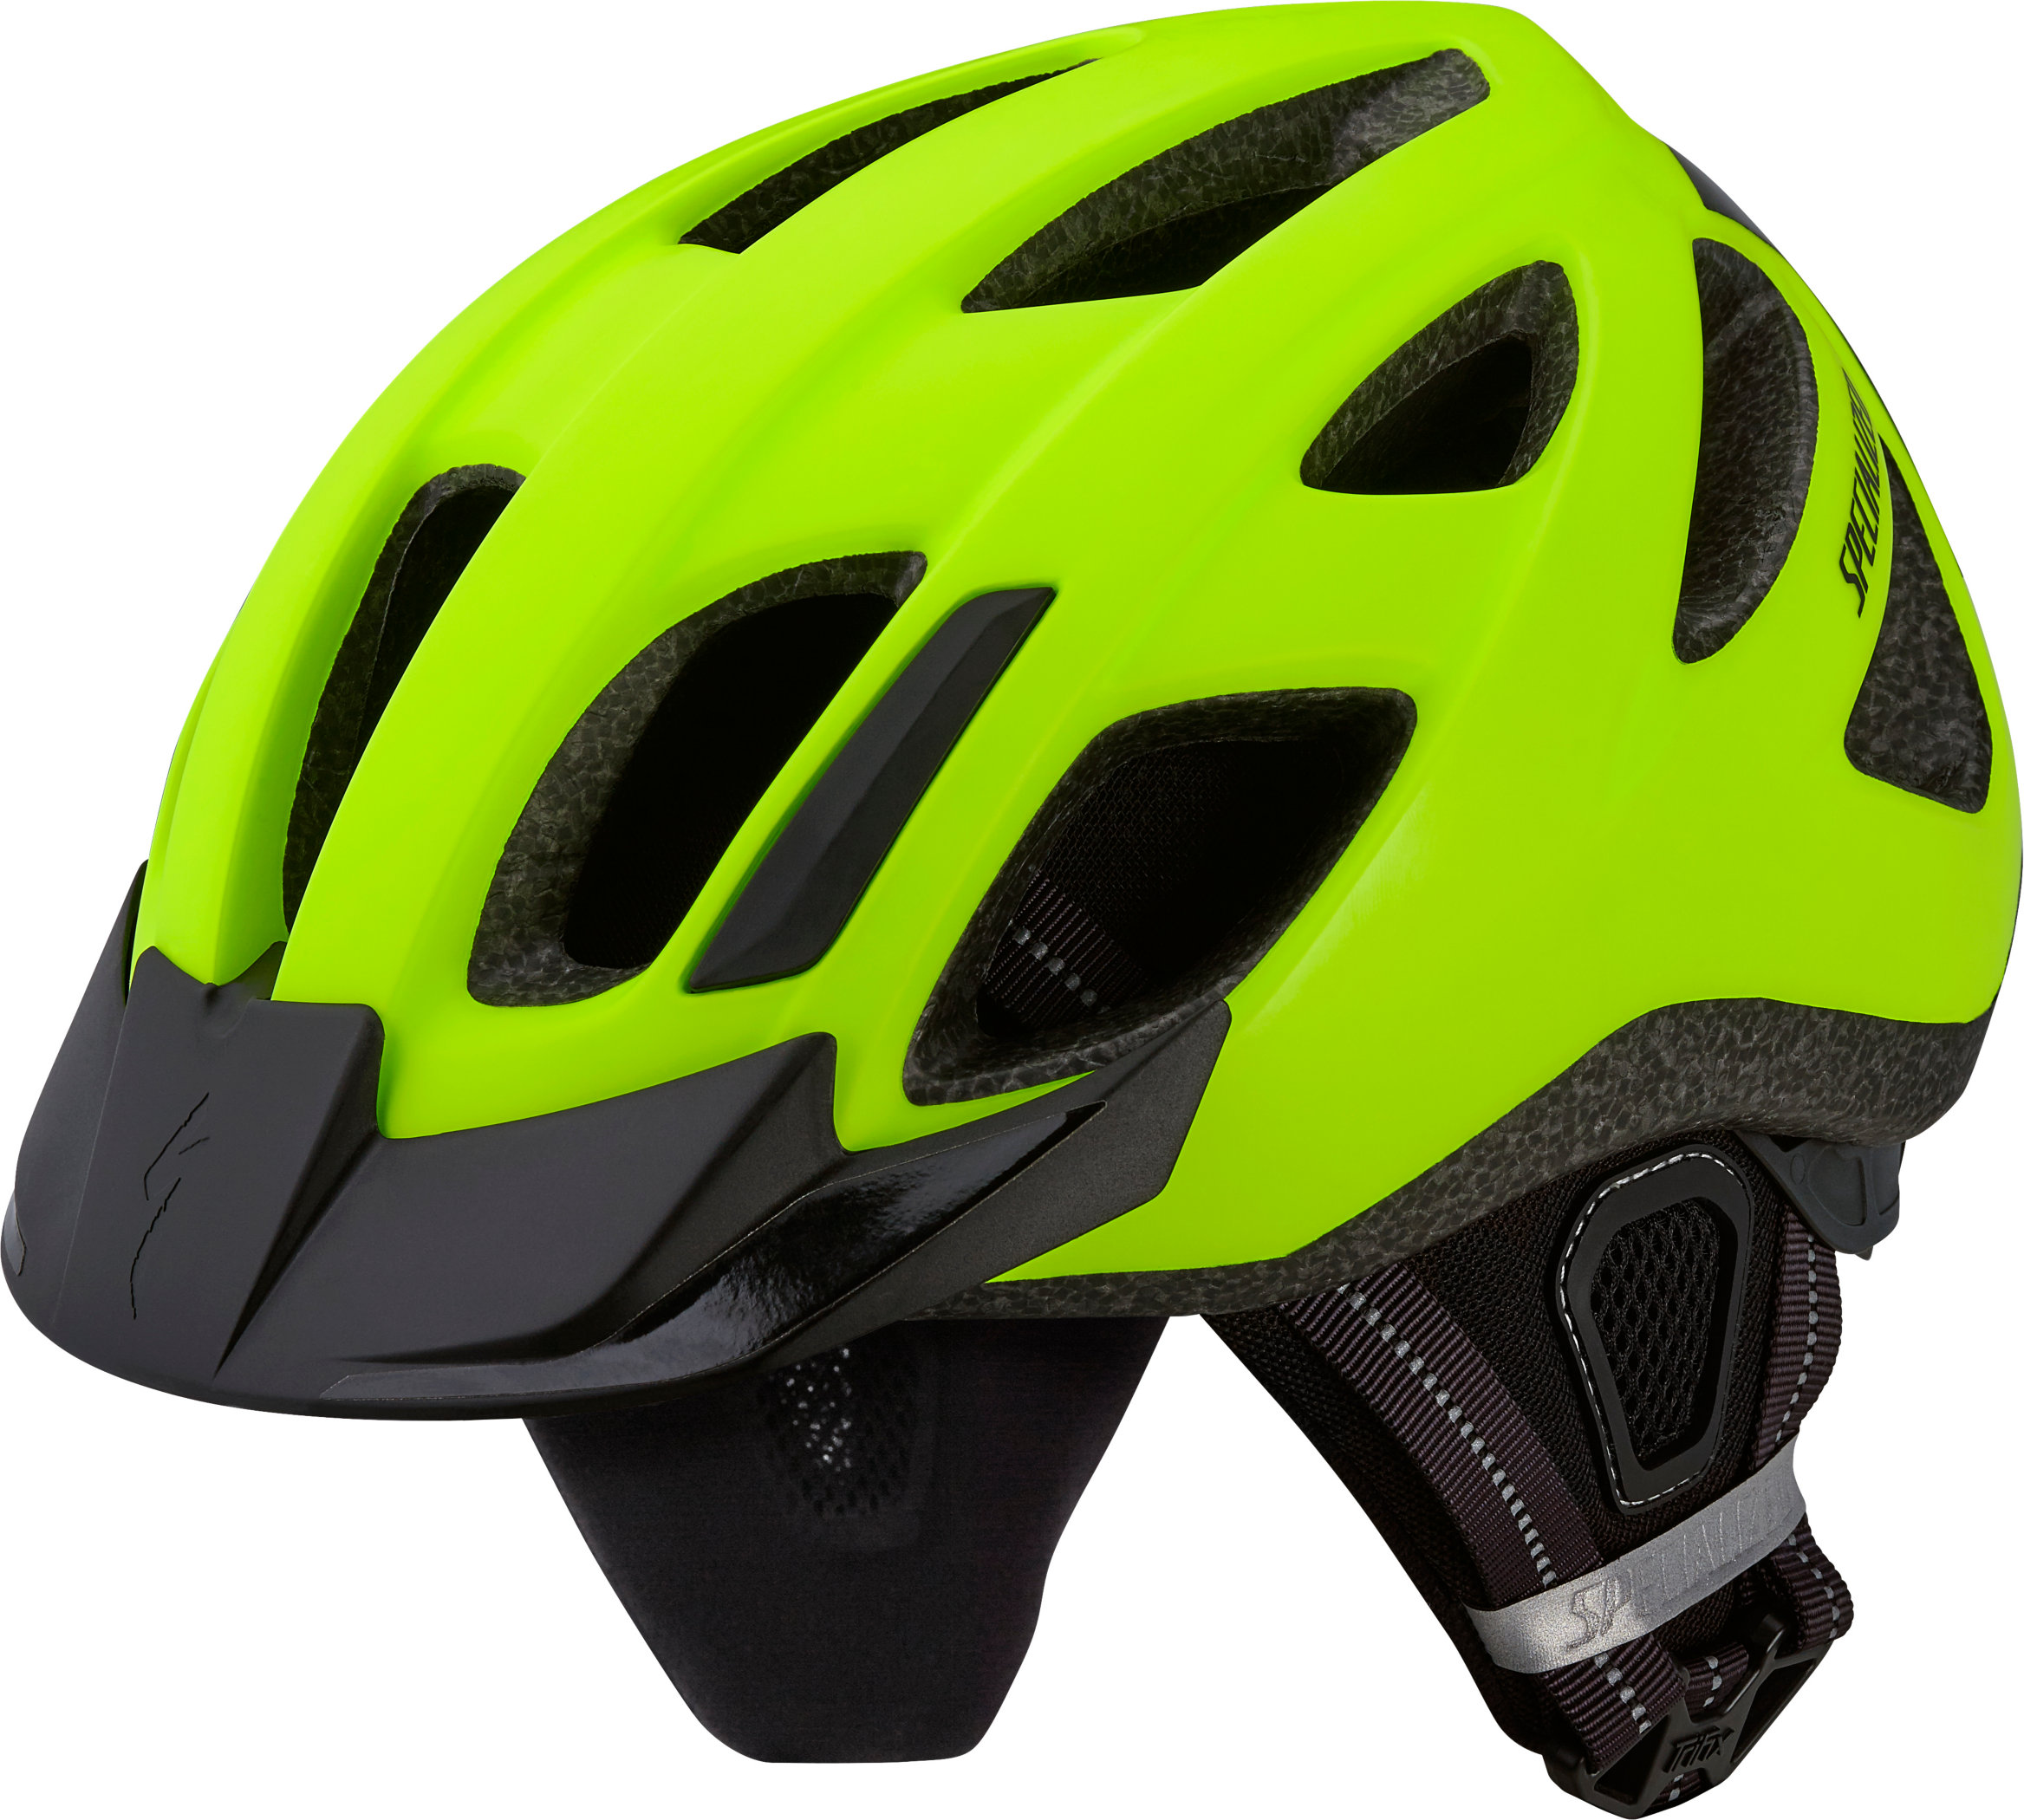 SPECIALIZED CENTRO WINTER LED HLMT CE SAFETY ION ADLT - Bike Zone